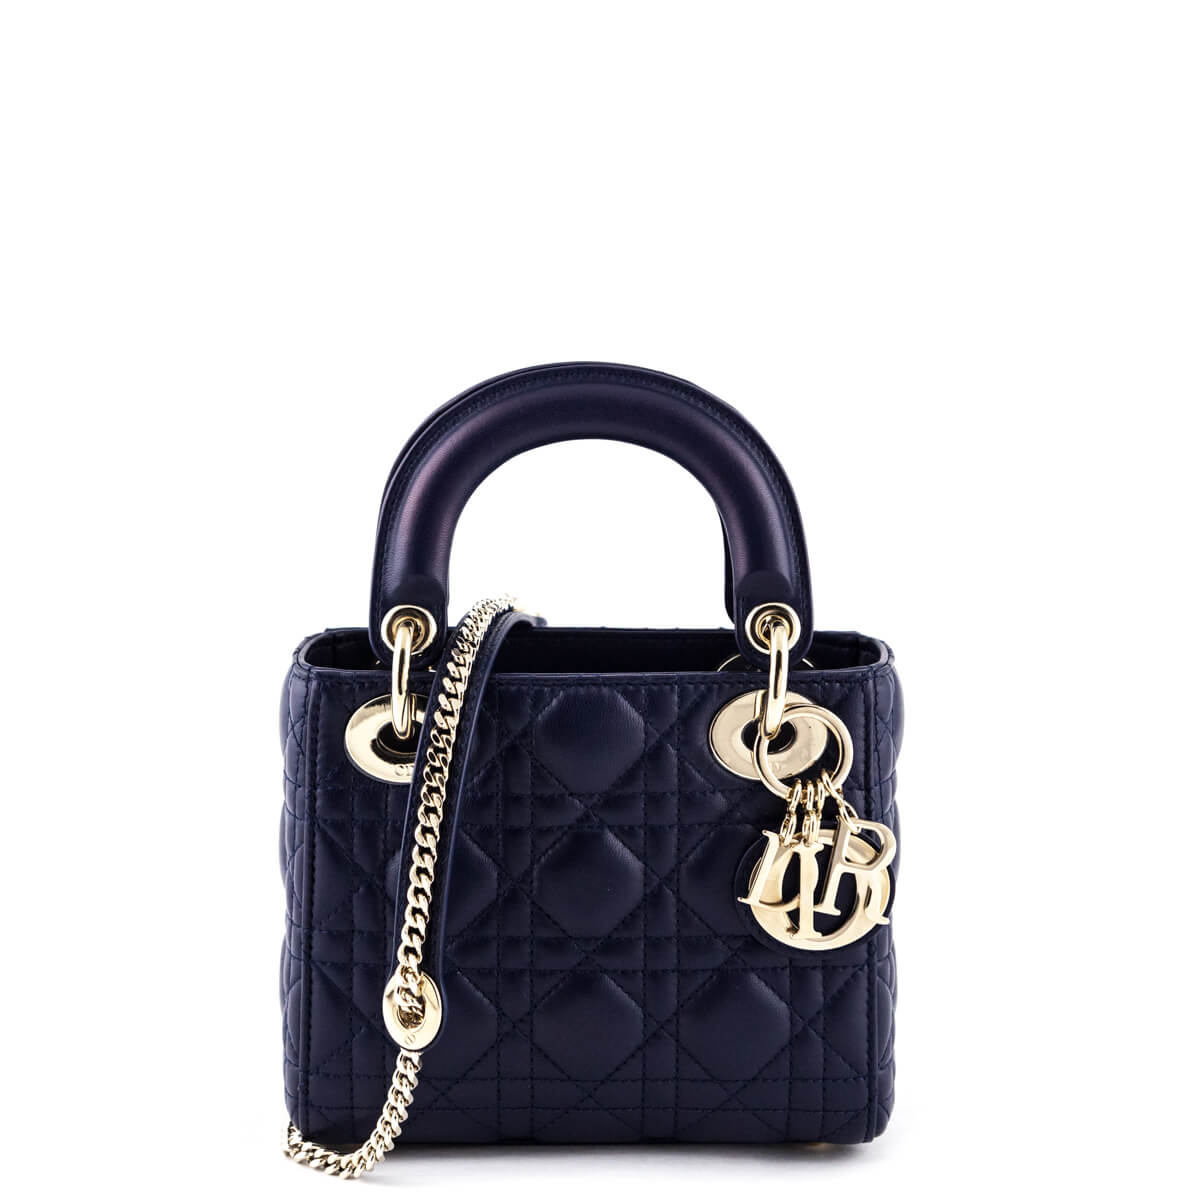 598106fc221 Dior Navy Cannage Lambskin Mini Lady Dior - LOVE that BAG - Preowned  Authentic Designer Handbags ...